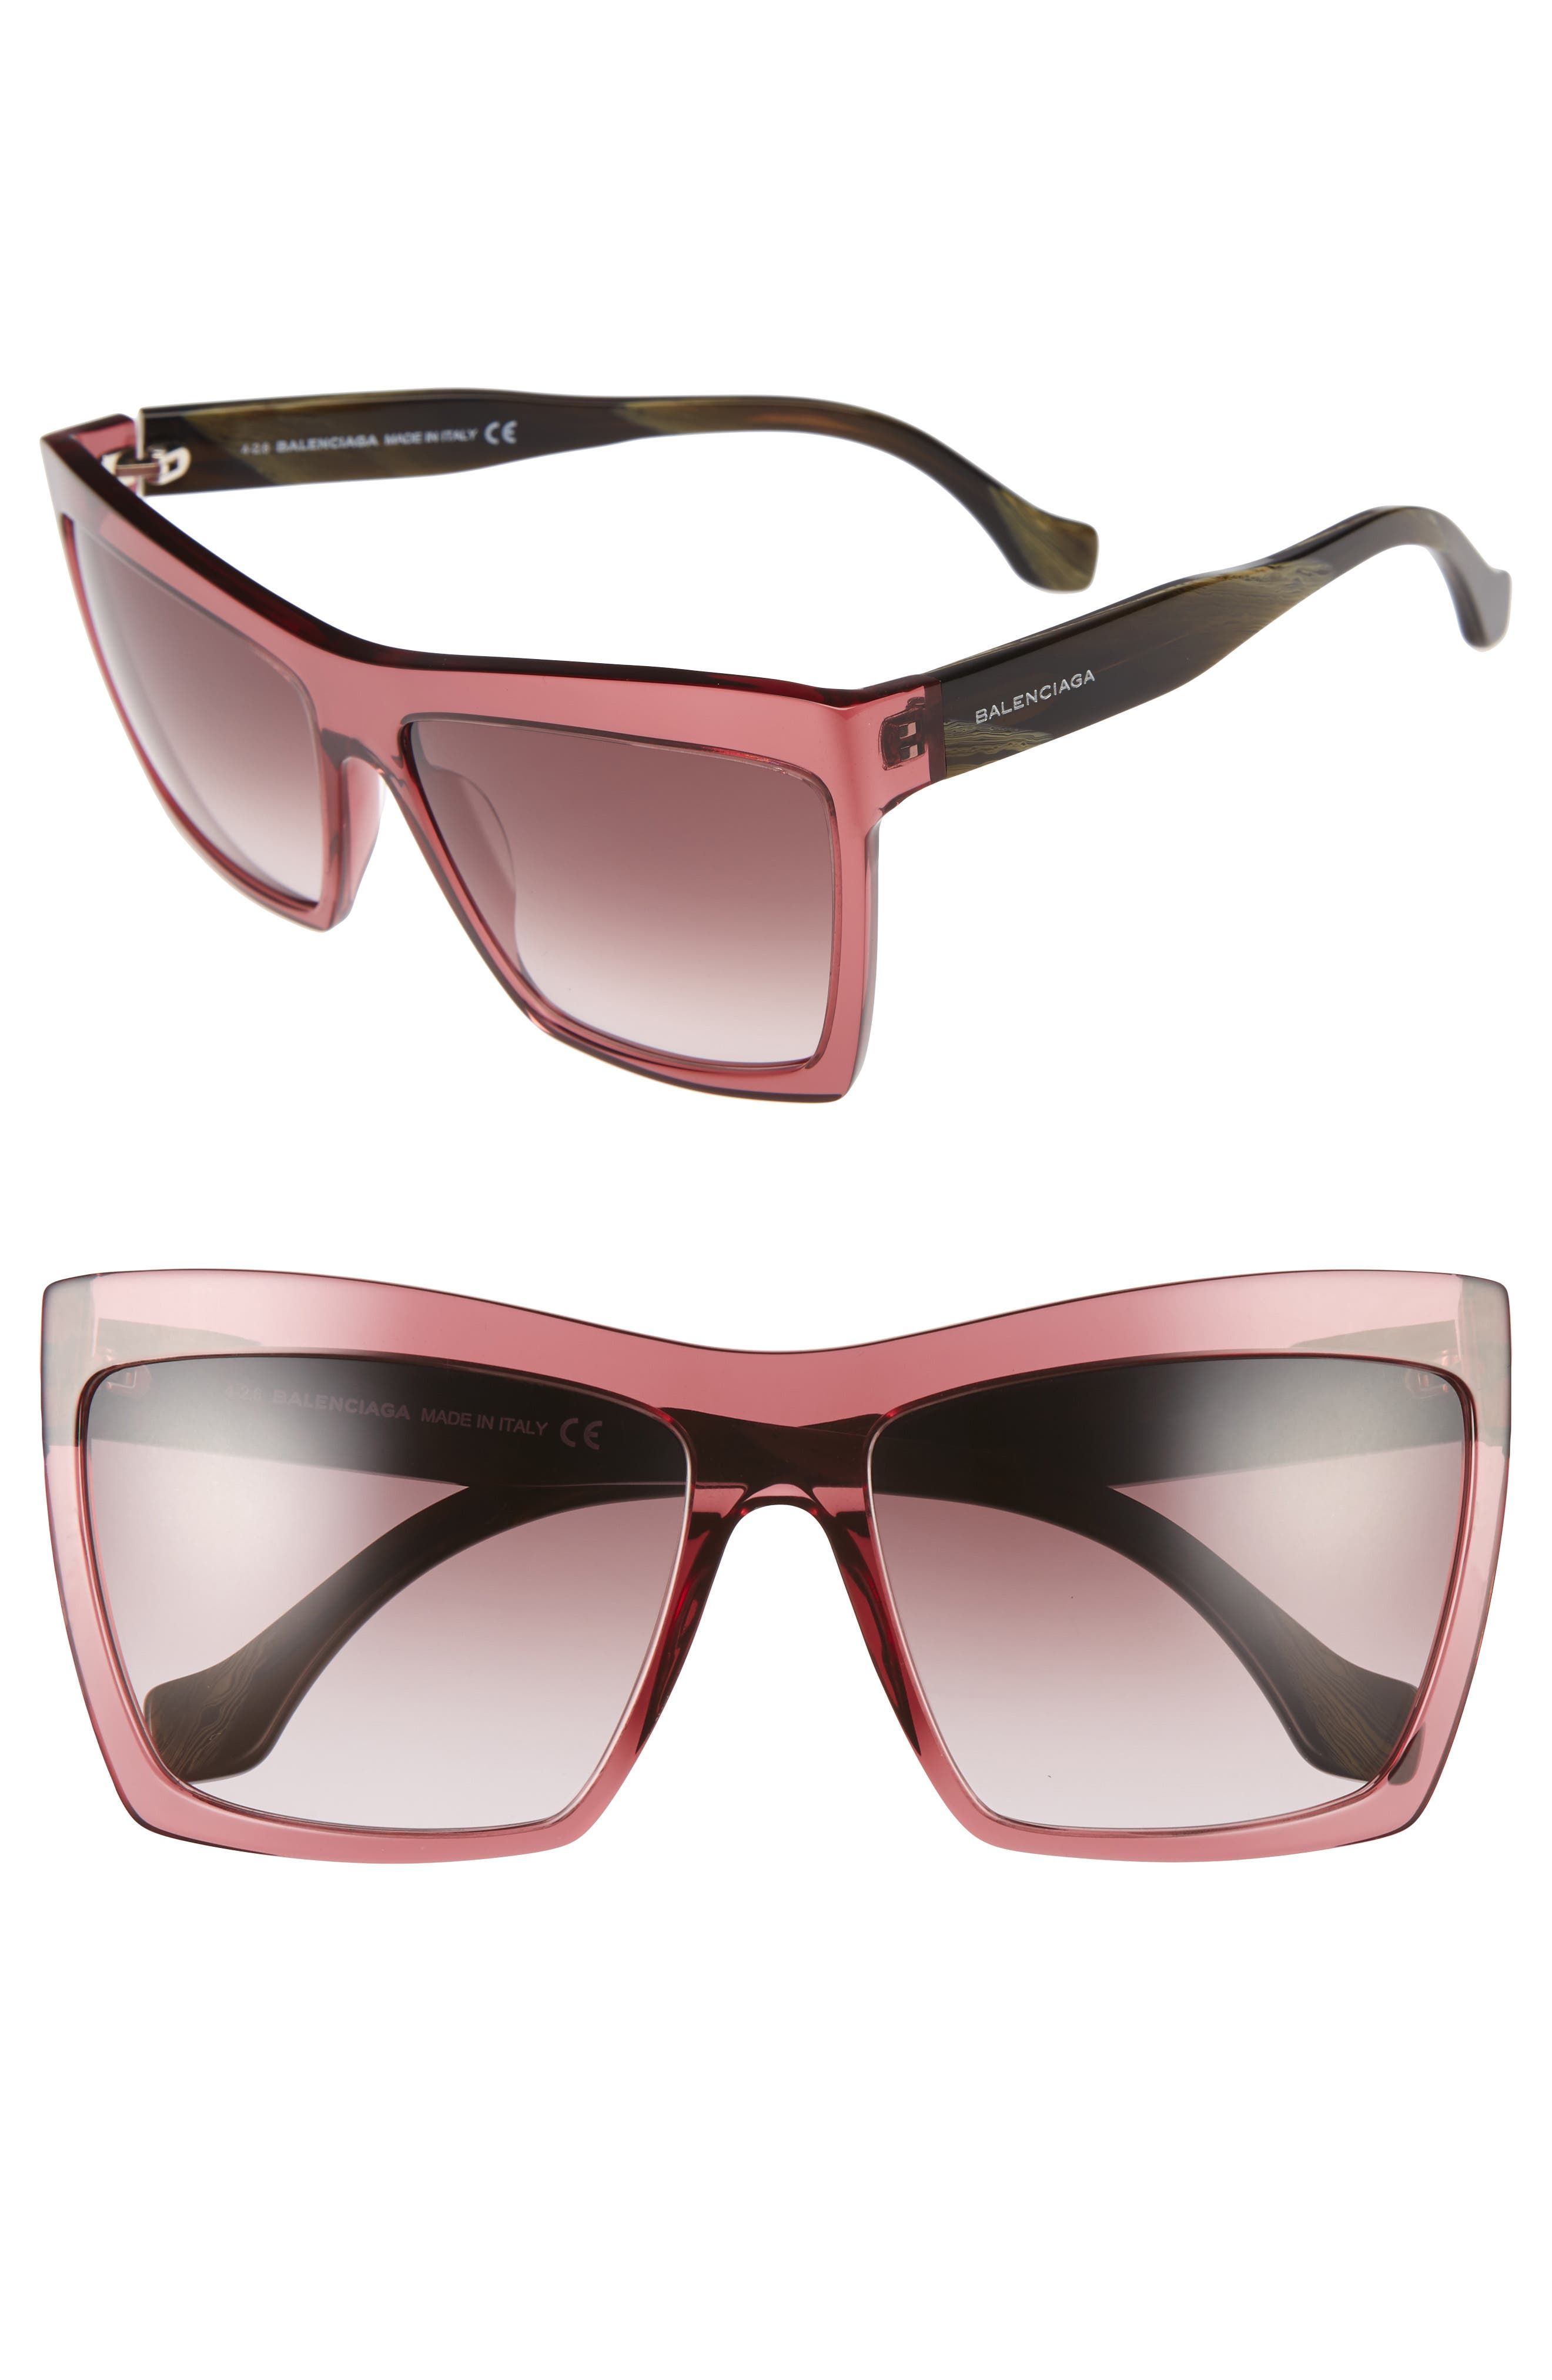 60mm Oversize Sunglasses,                             Main thumbnail 1, color,                             Red/ Green/ Silver/ Red